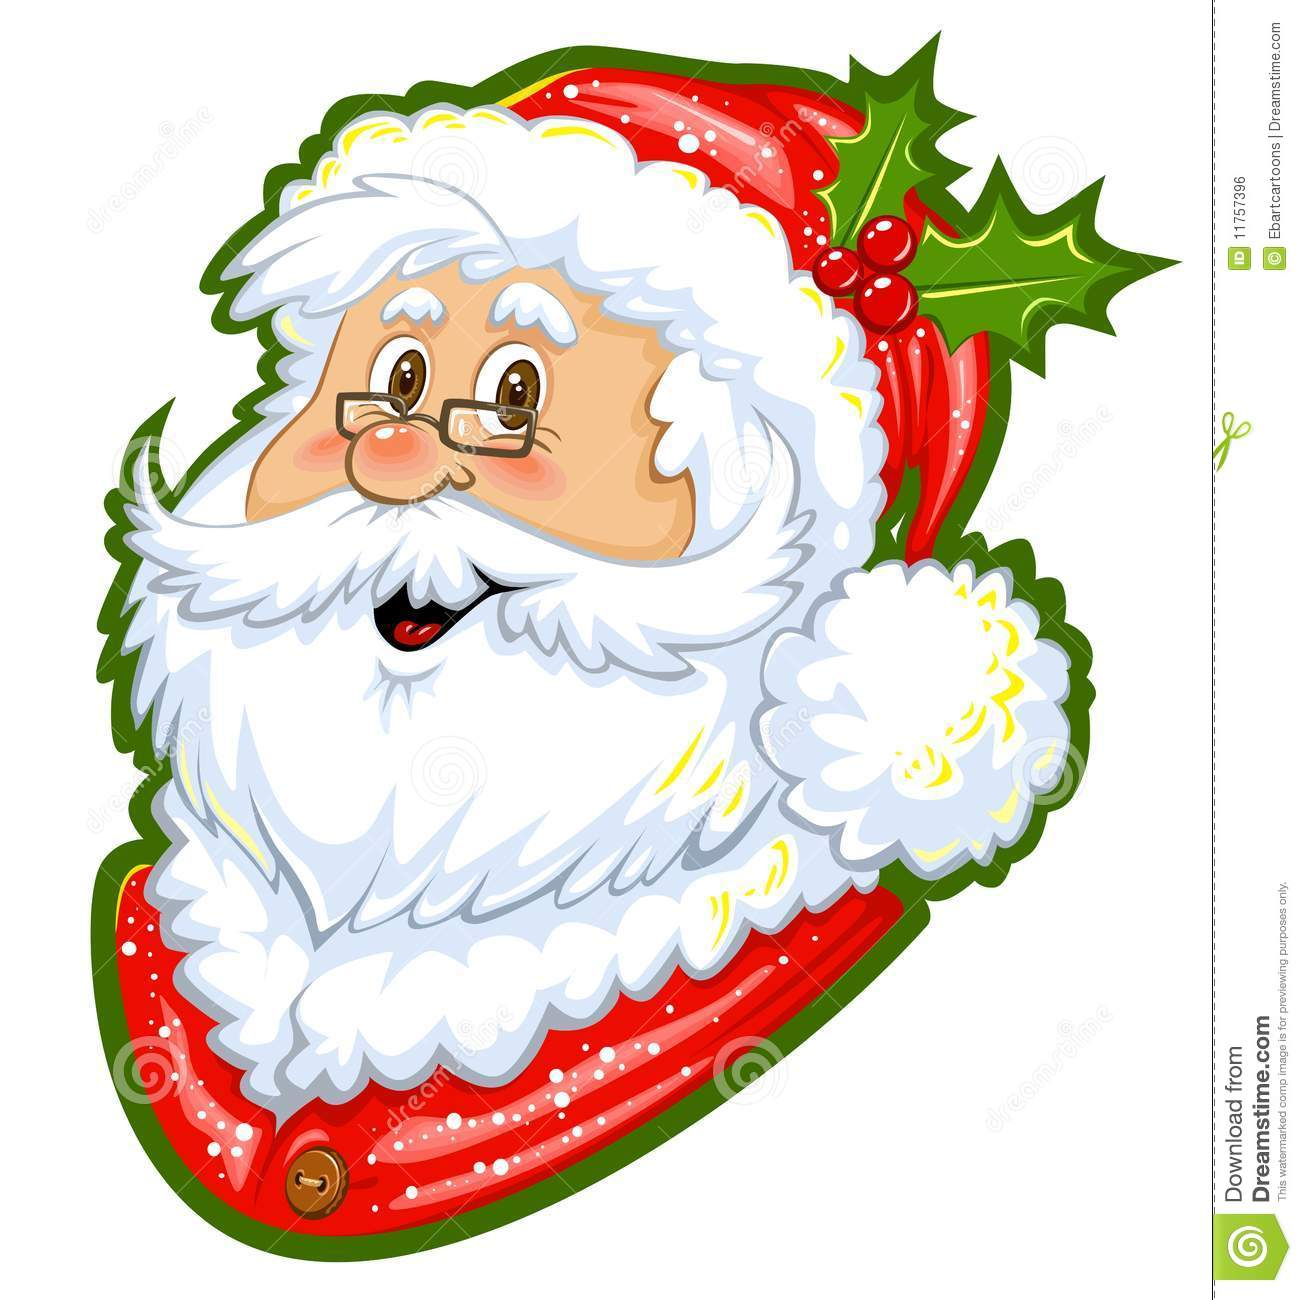 Couleur clipart du p re no l illustration stock illustration du jouets tra neau 11757396 - Clipart pere noel gratuit ...